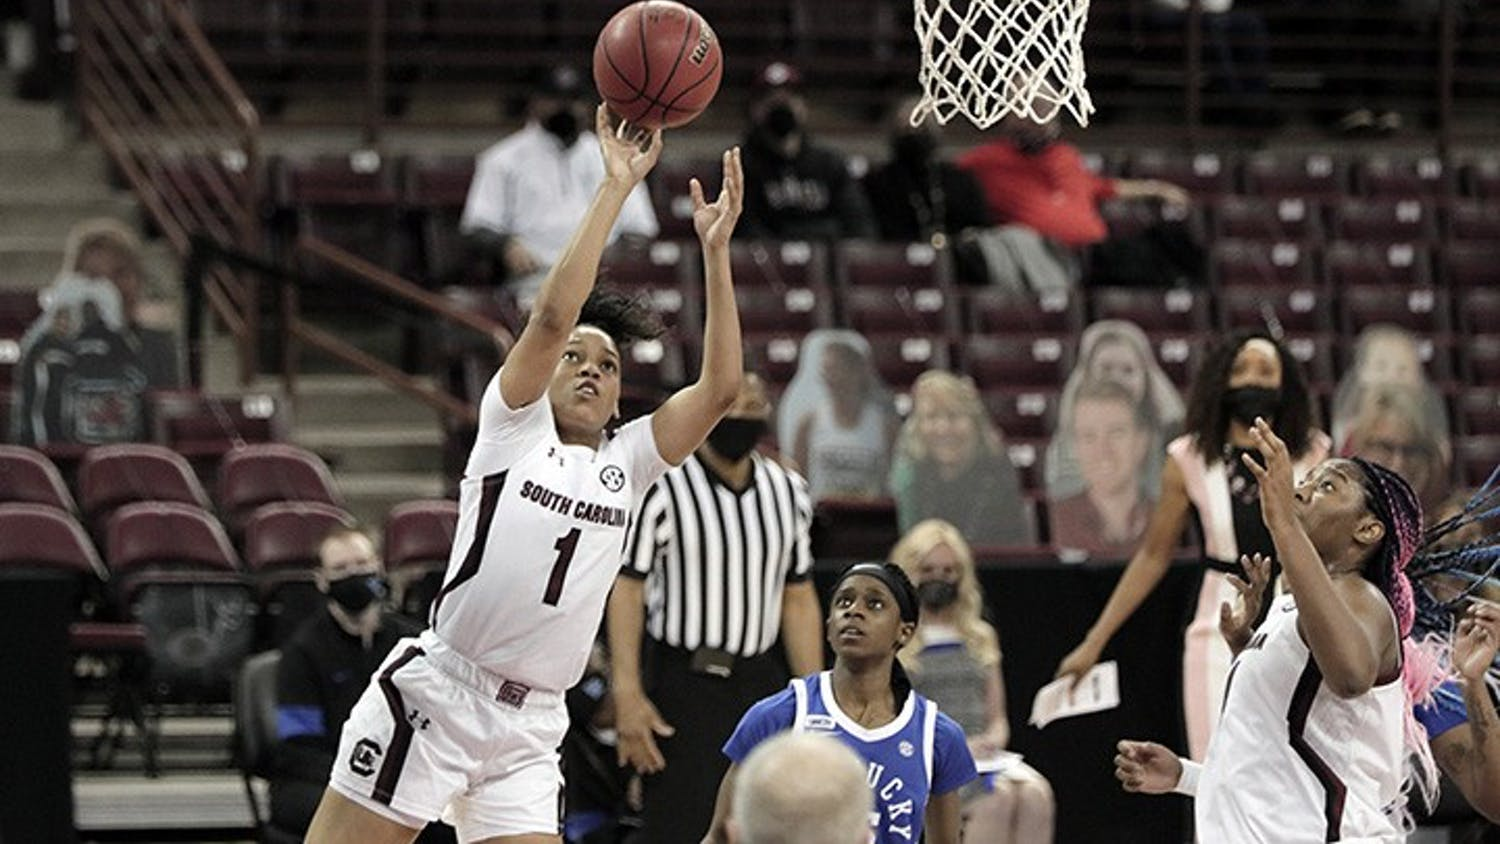 Sophomore guard Zia Cooke shoots the ball. South Carolina won against Kentucky 76-55, bouncing back from the team's loss against Tennessee.